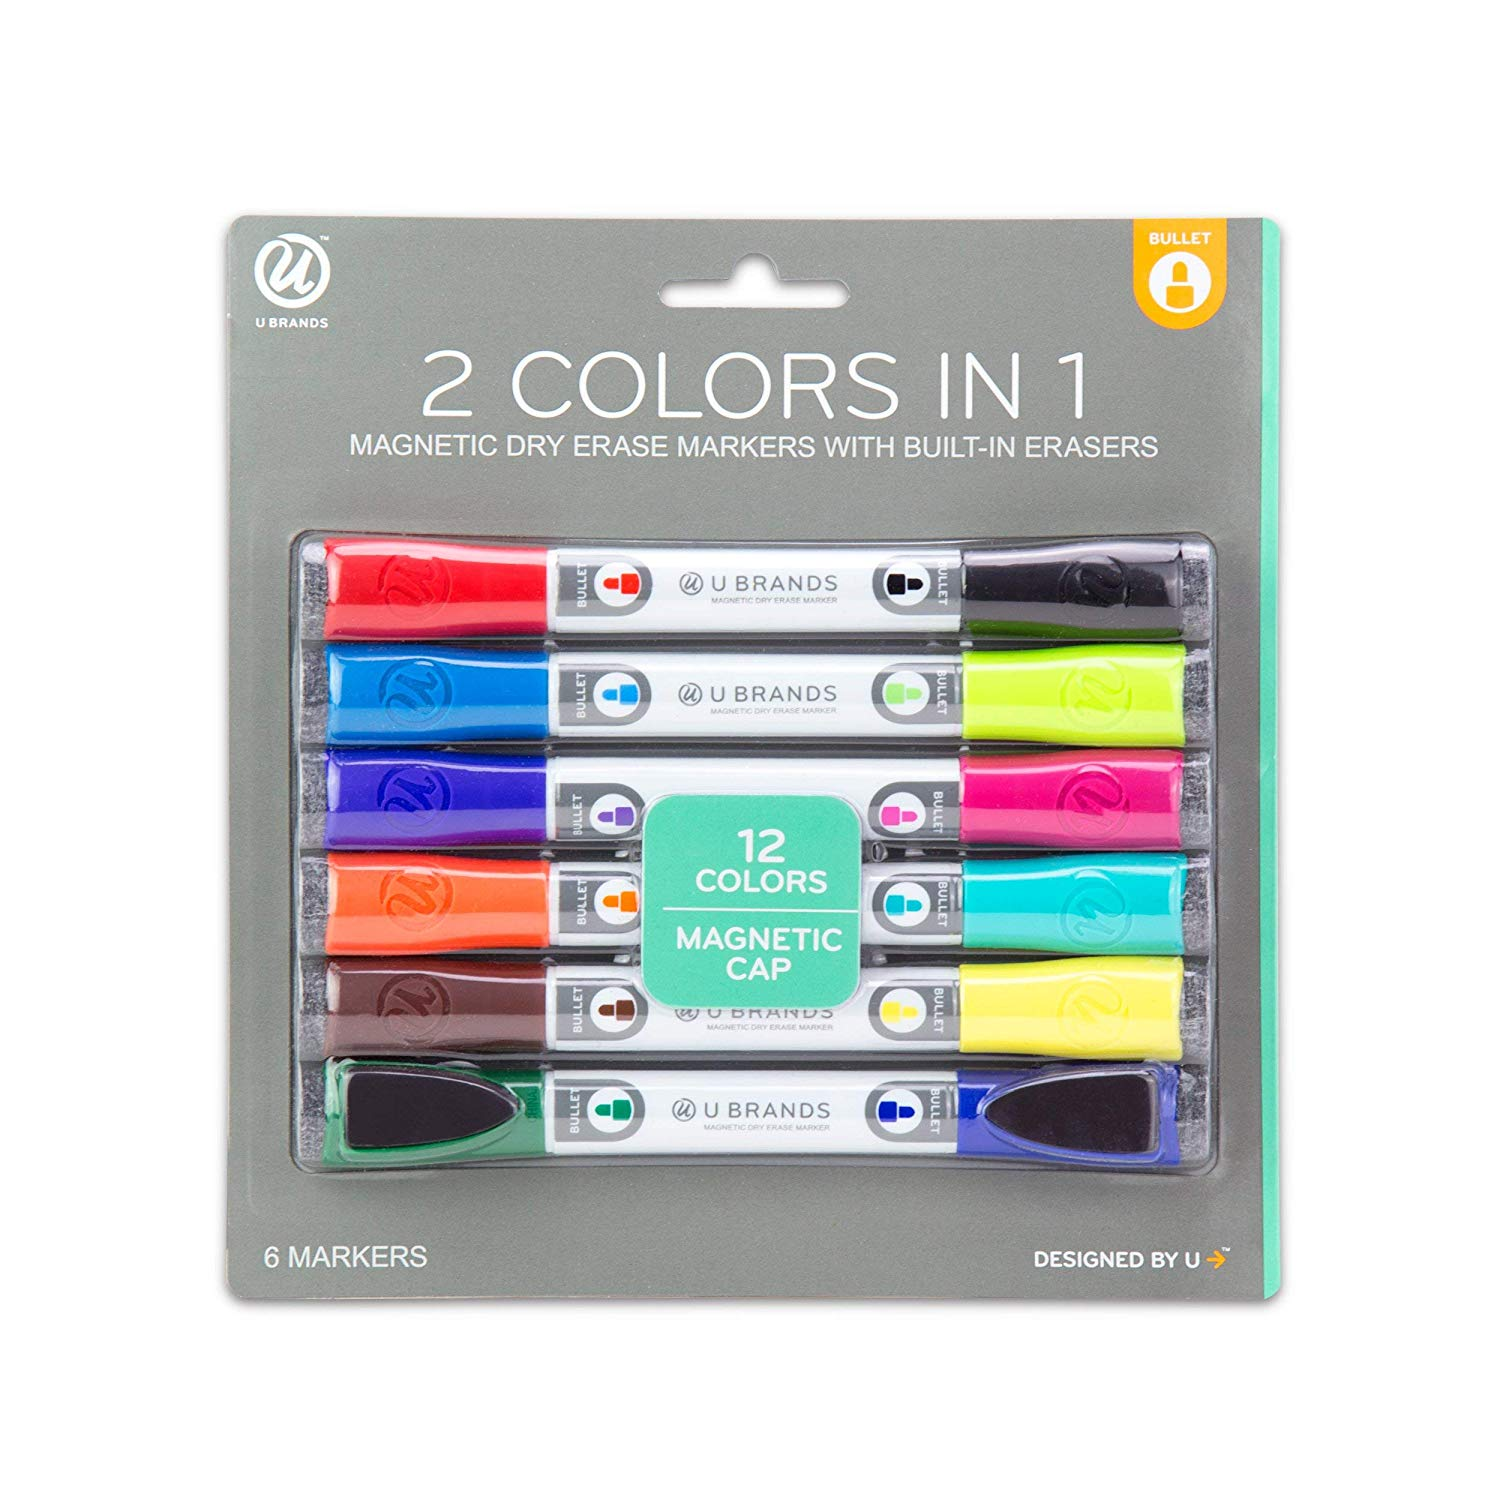 double sided dry erase markers - If you've seen my whiteboard lettering you know how much I love/depend on my markers! I'm shopping for new markers right now, and these double ended (!) babies are on the top of my wishlist (they're also magnetic and low odor!)